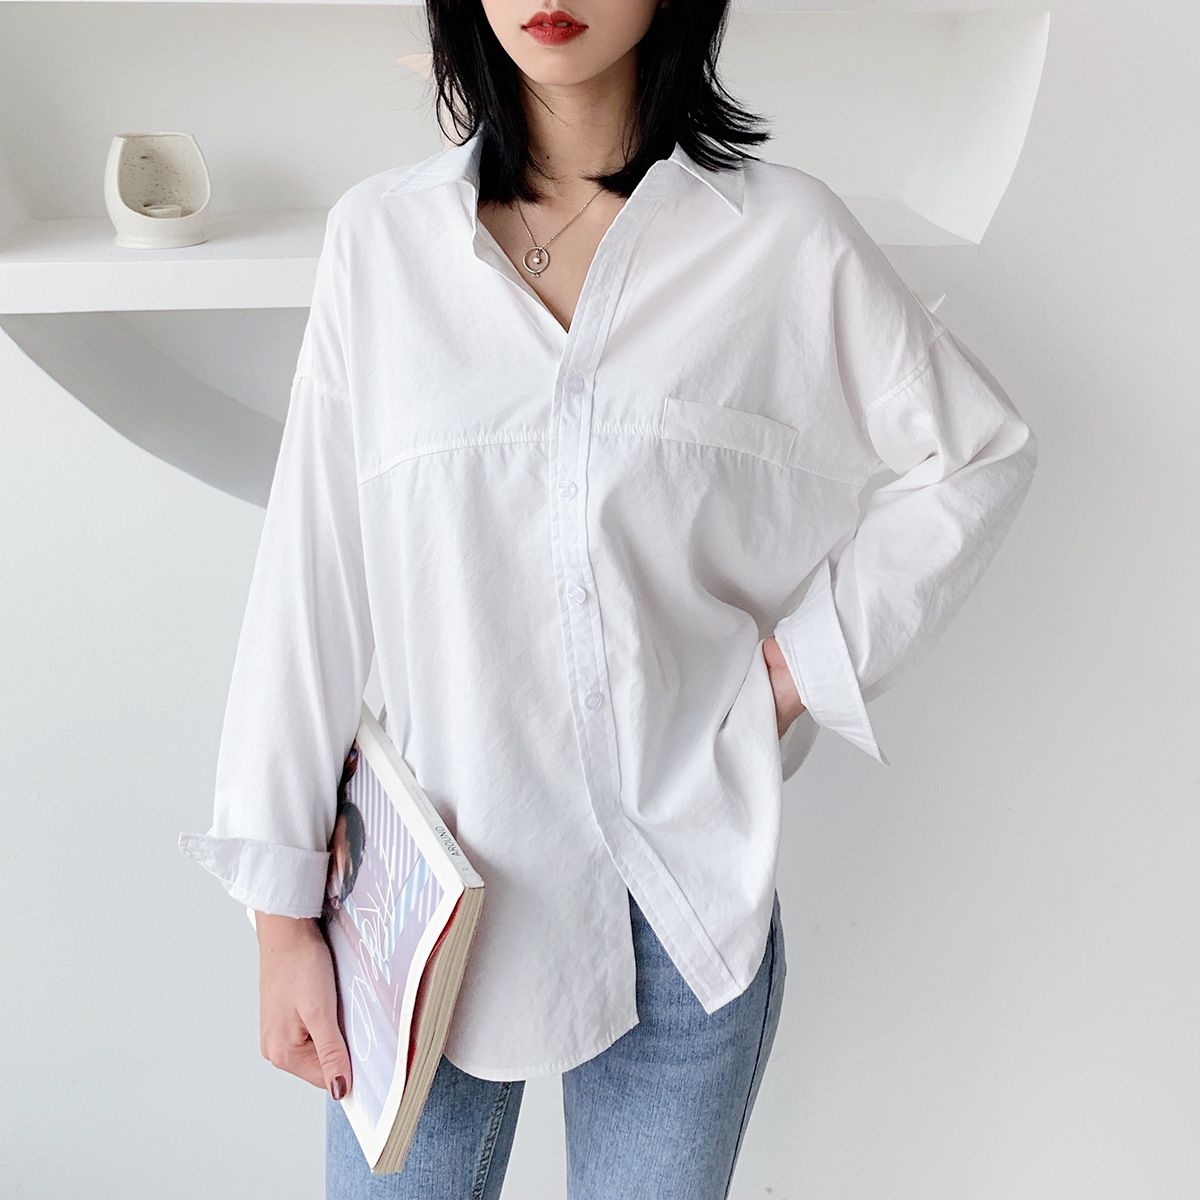 #2020 #blouses #woman #new #solid #color #fashion #shirts #temperament #full-sleeve #shirt #loose #women #tops #casual #wild #white #brief